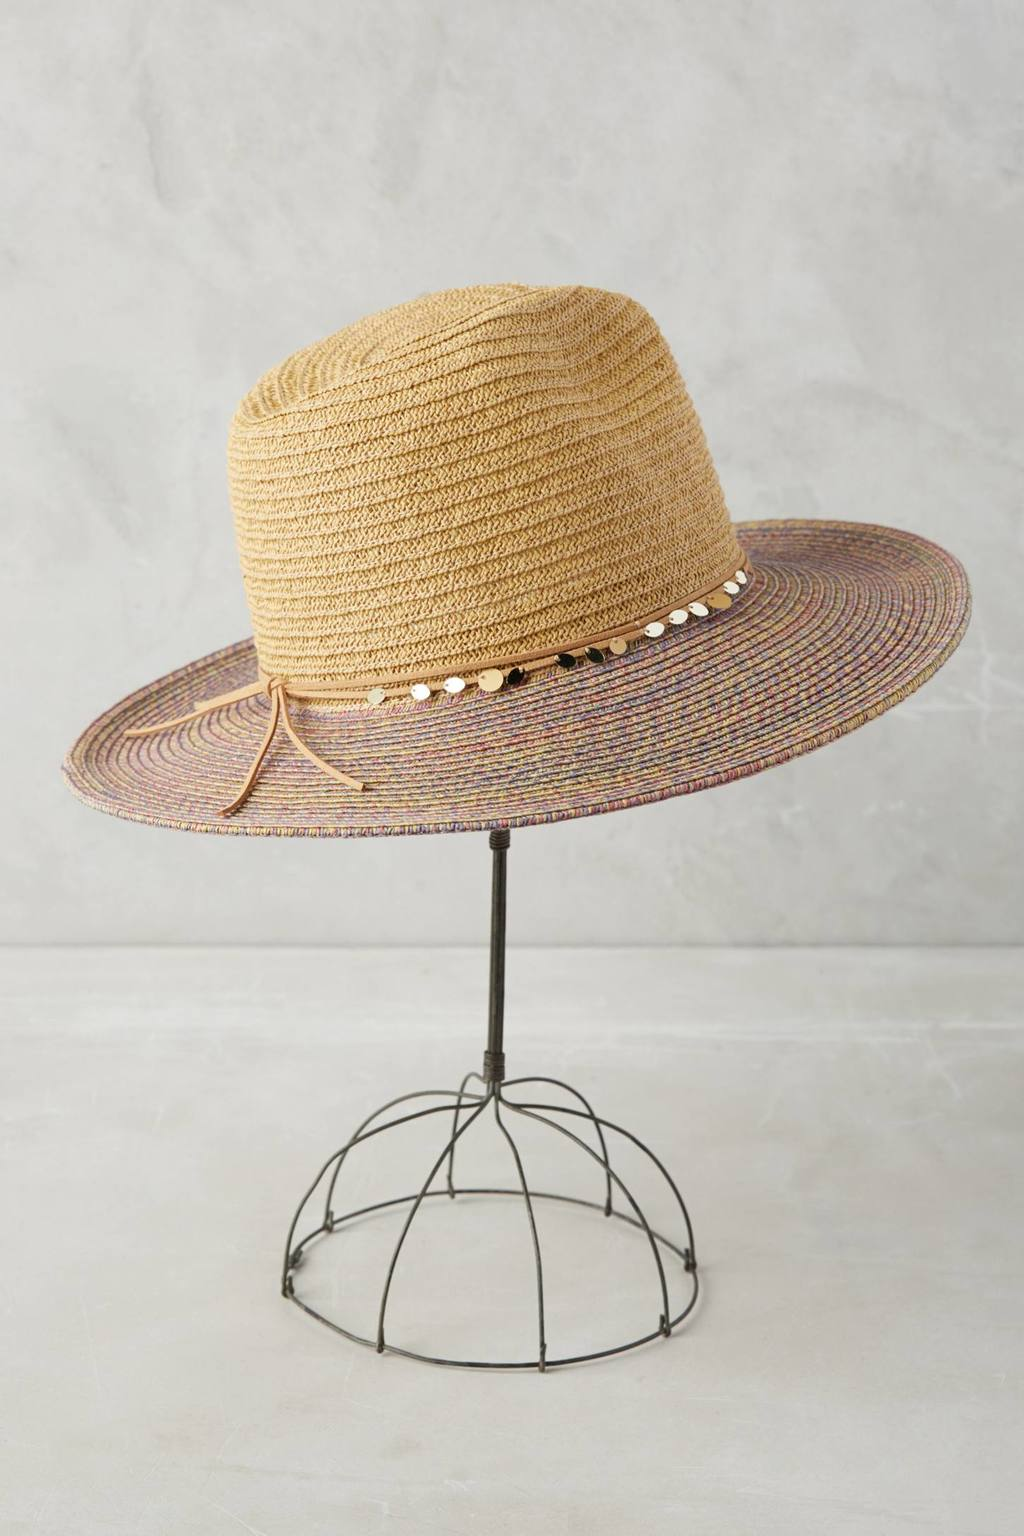 La Jolla Rancher Hat - predominant colour: camel; secondary colour: taupe; type of pattern: standard; style: brimmed; size: standard; material: macrame/raffia/straw; occasions: holiday; pattern: colourblock; embellishment: chain/metal; season: s/s 2016; wardrobe: holiday